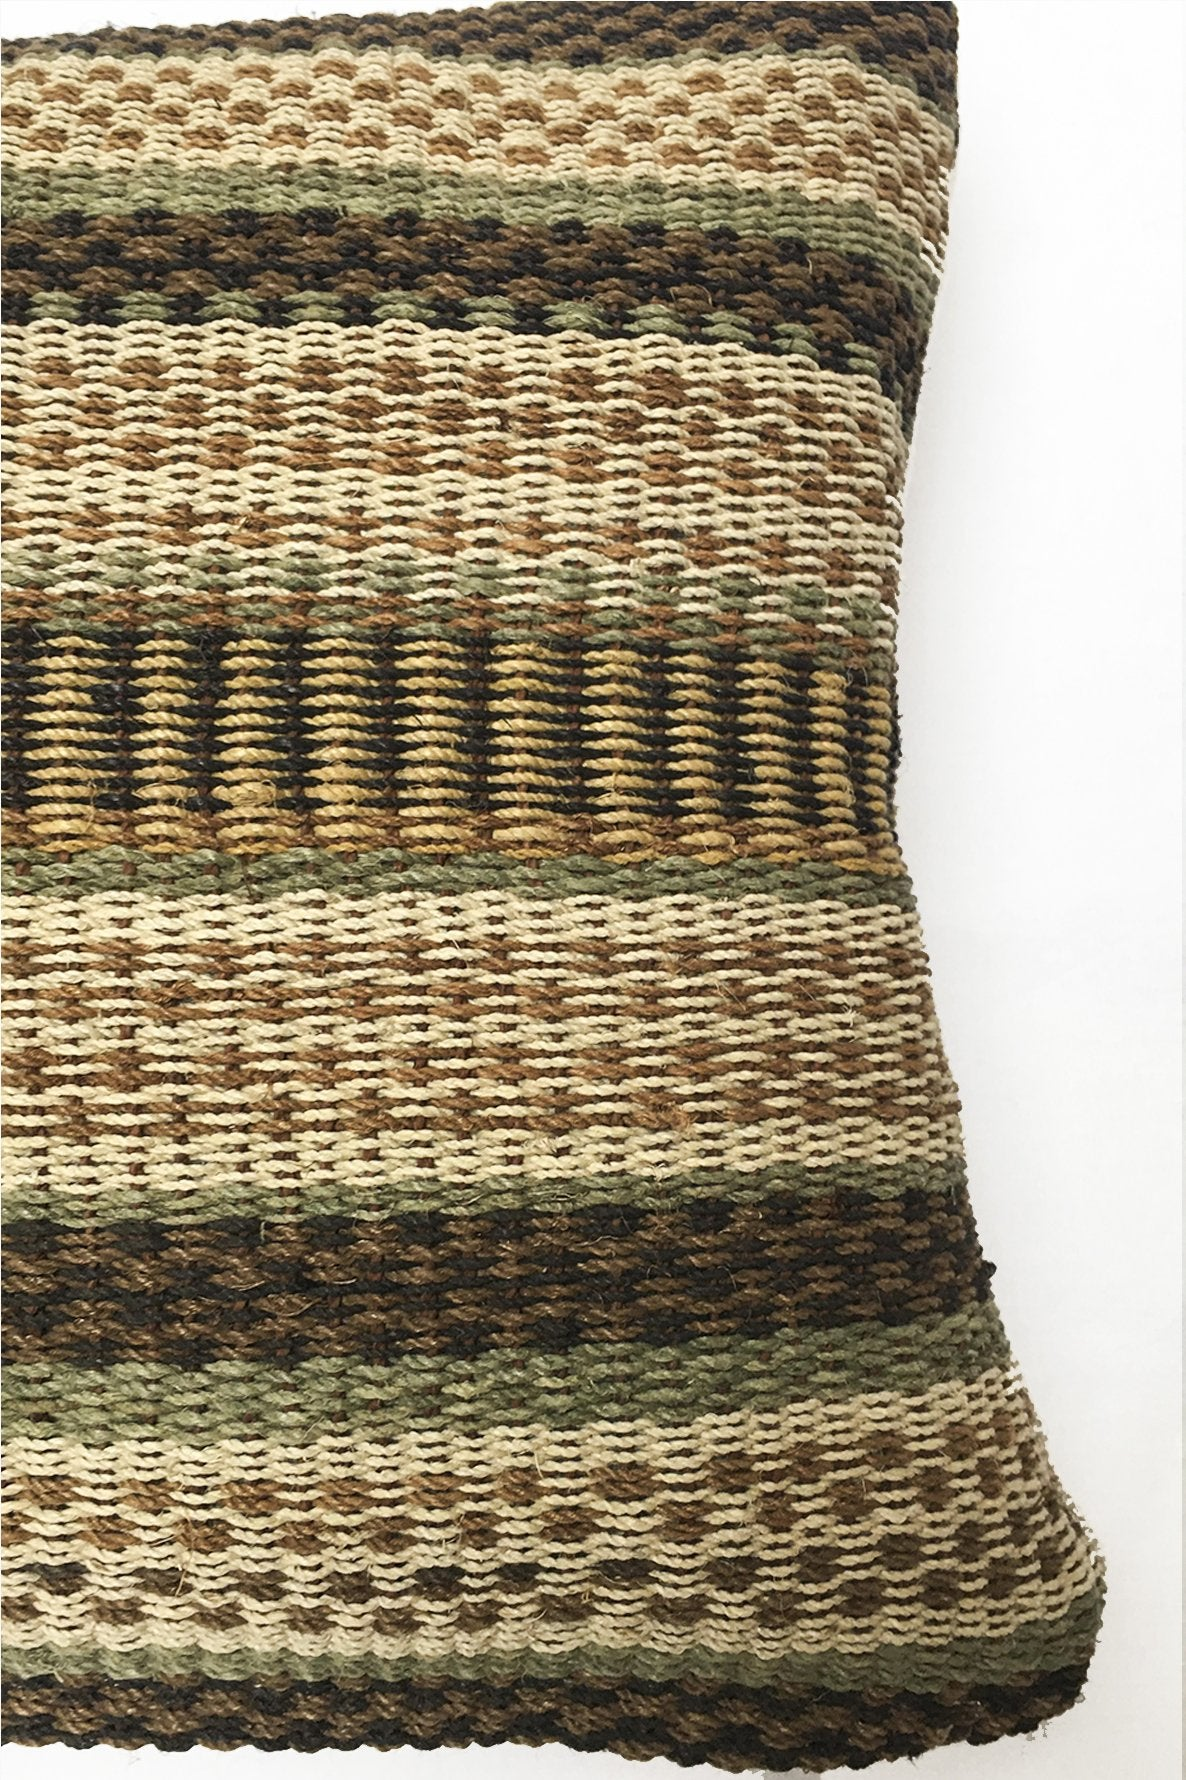 Close up of Cream Chaguar Loom Cushion with Multicolored Design Details. Stitching pattern is emphasized.